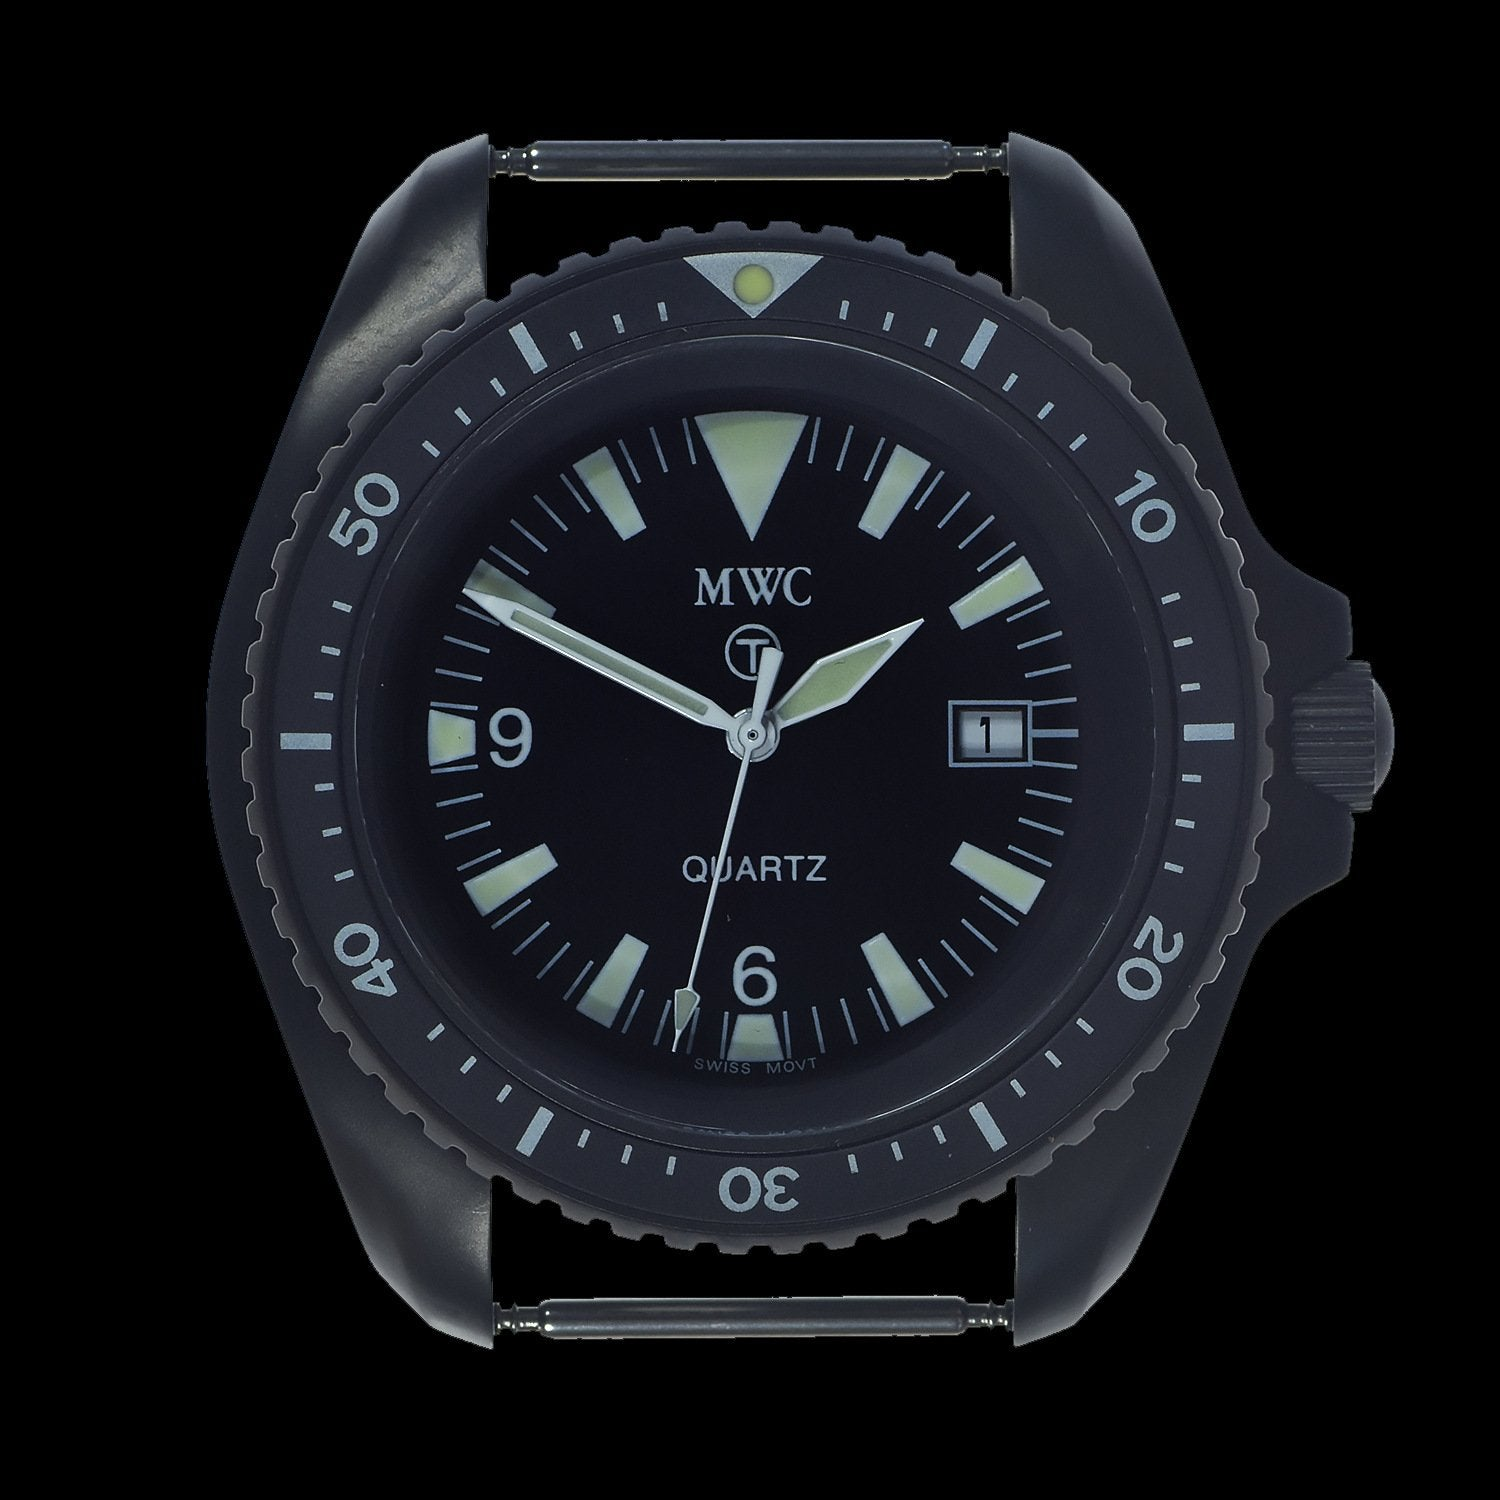 MWC 1999-2001 Pattern Quartz Military Divers Watch on Black NATO Strap / Brand New & Unissued